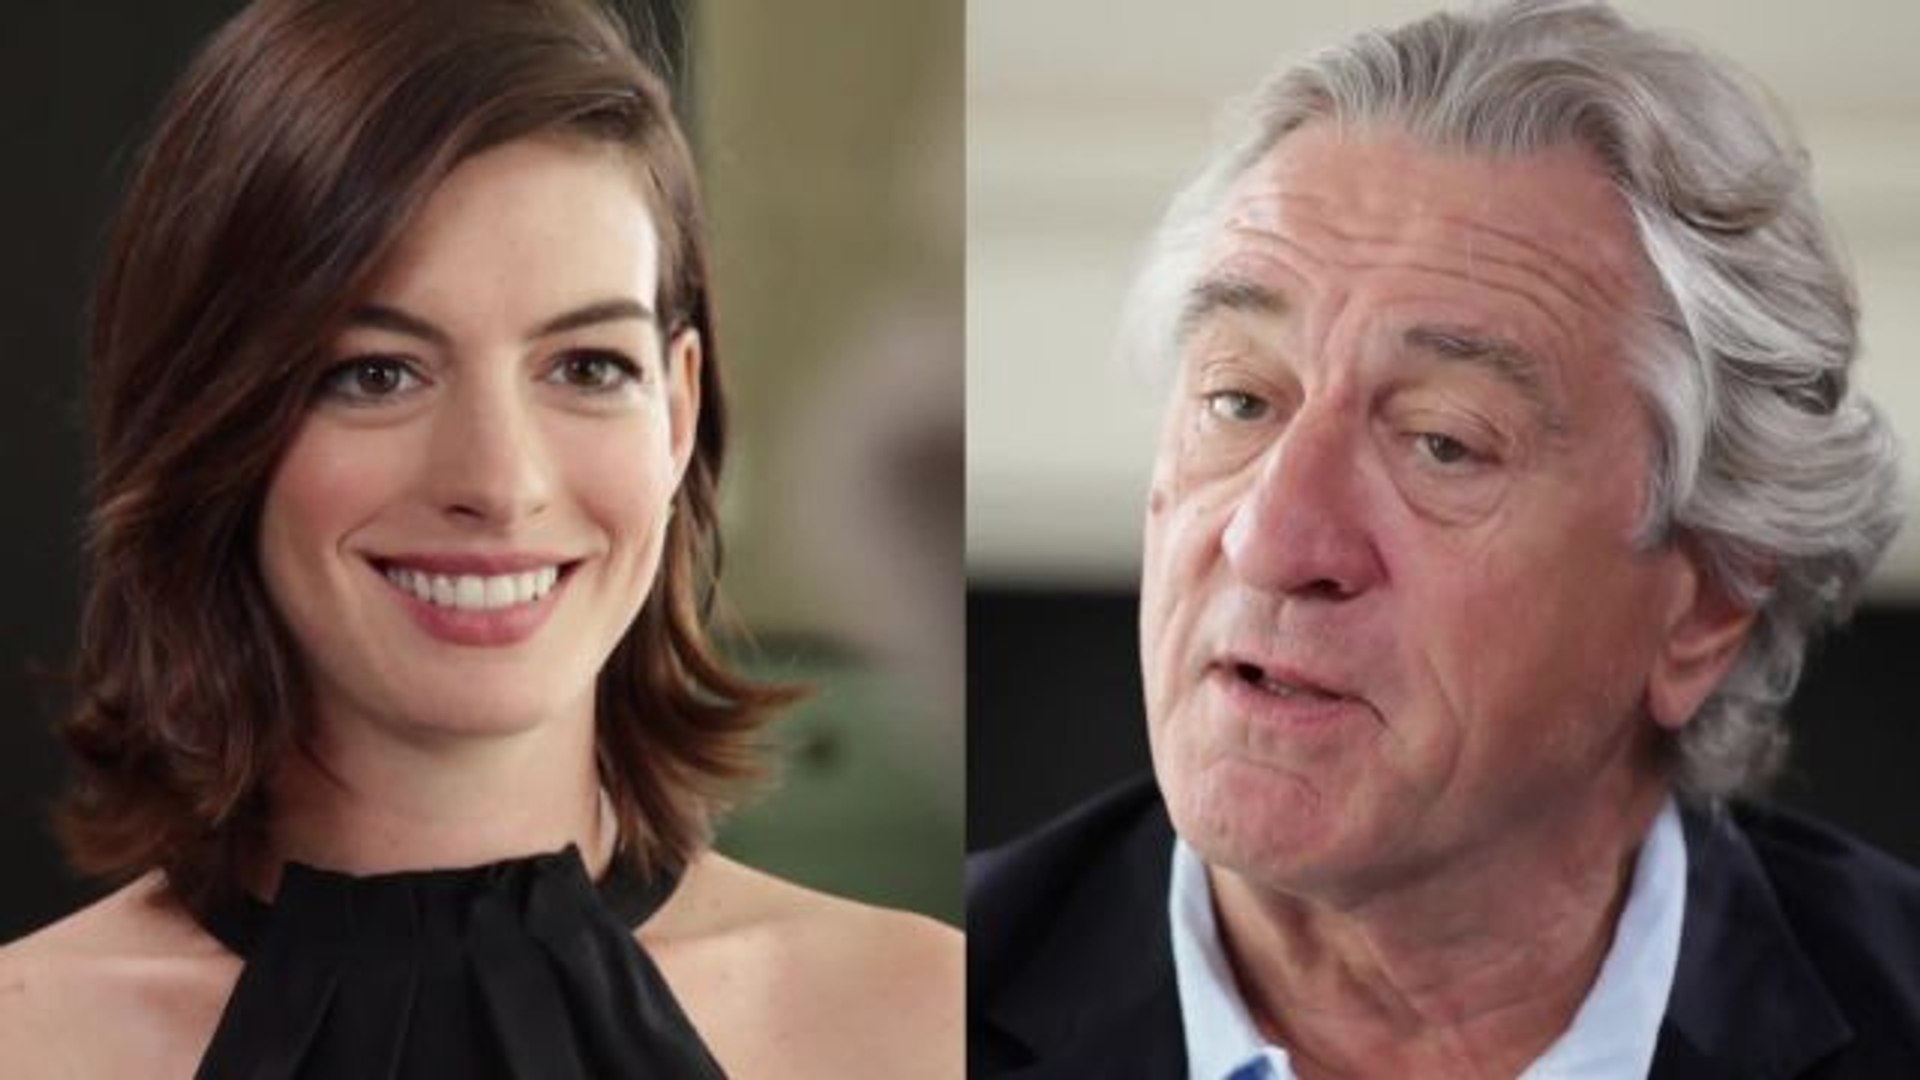 The And created by The Skin Deep - Anne Hathaway and Robert De Niro: What I Learned From Working wit